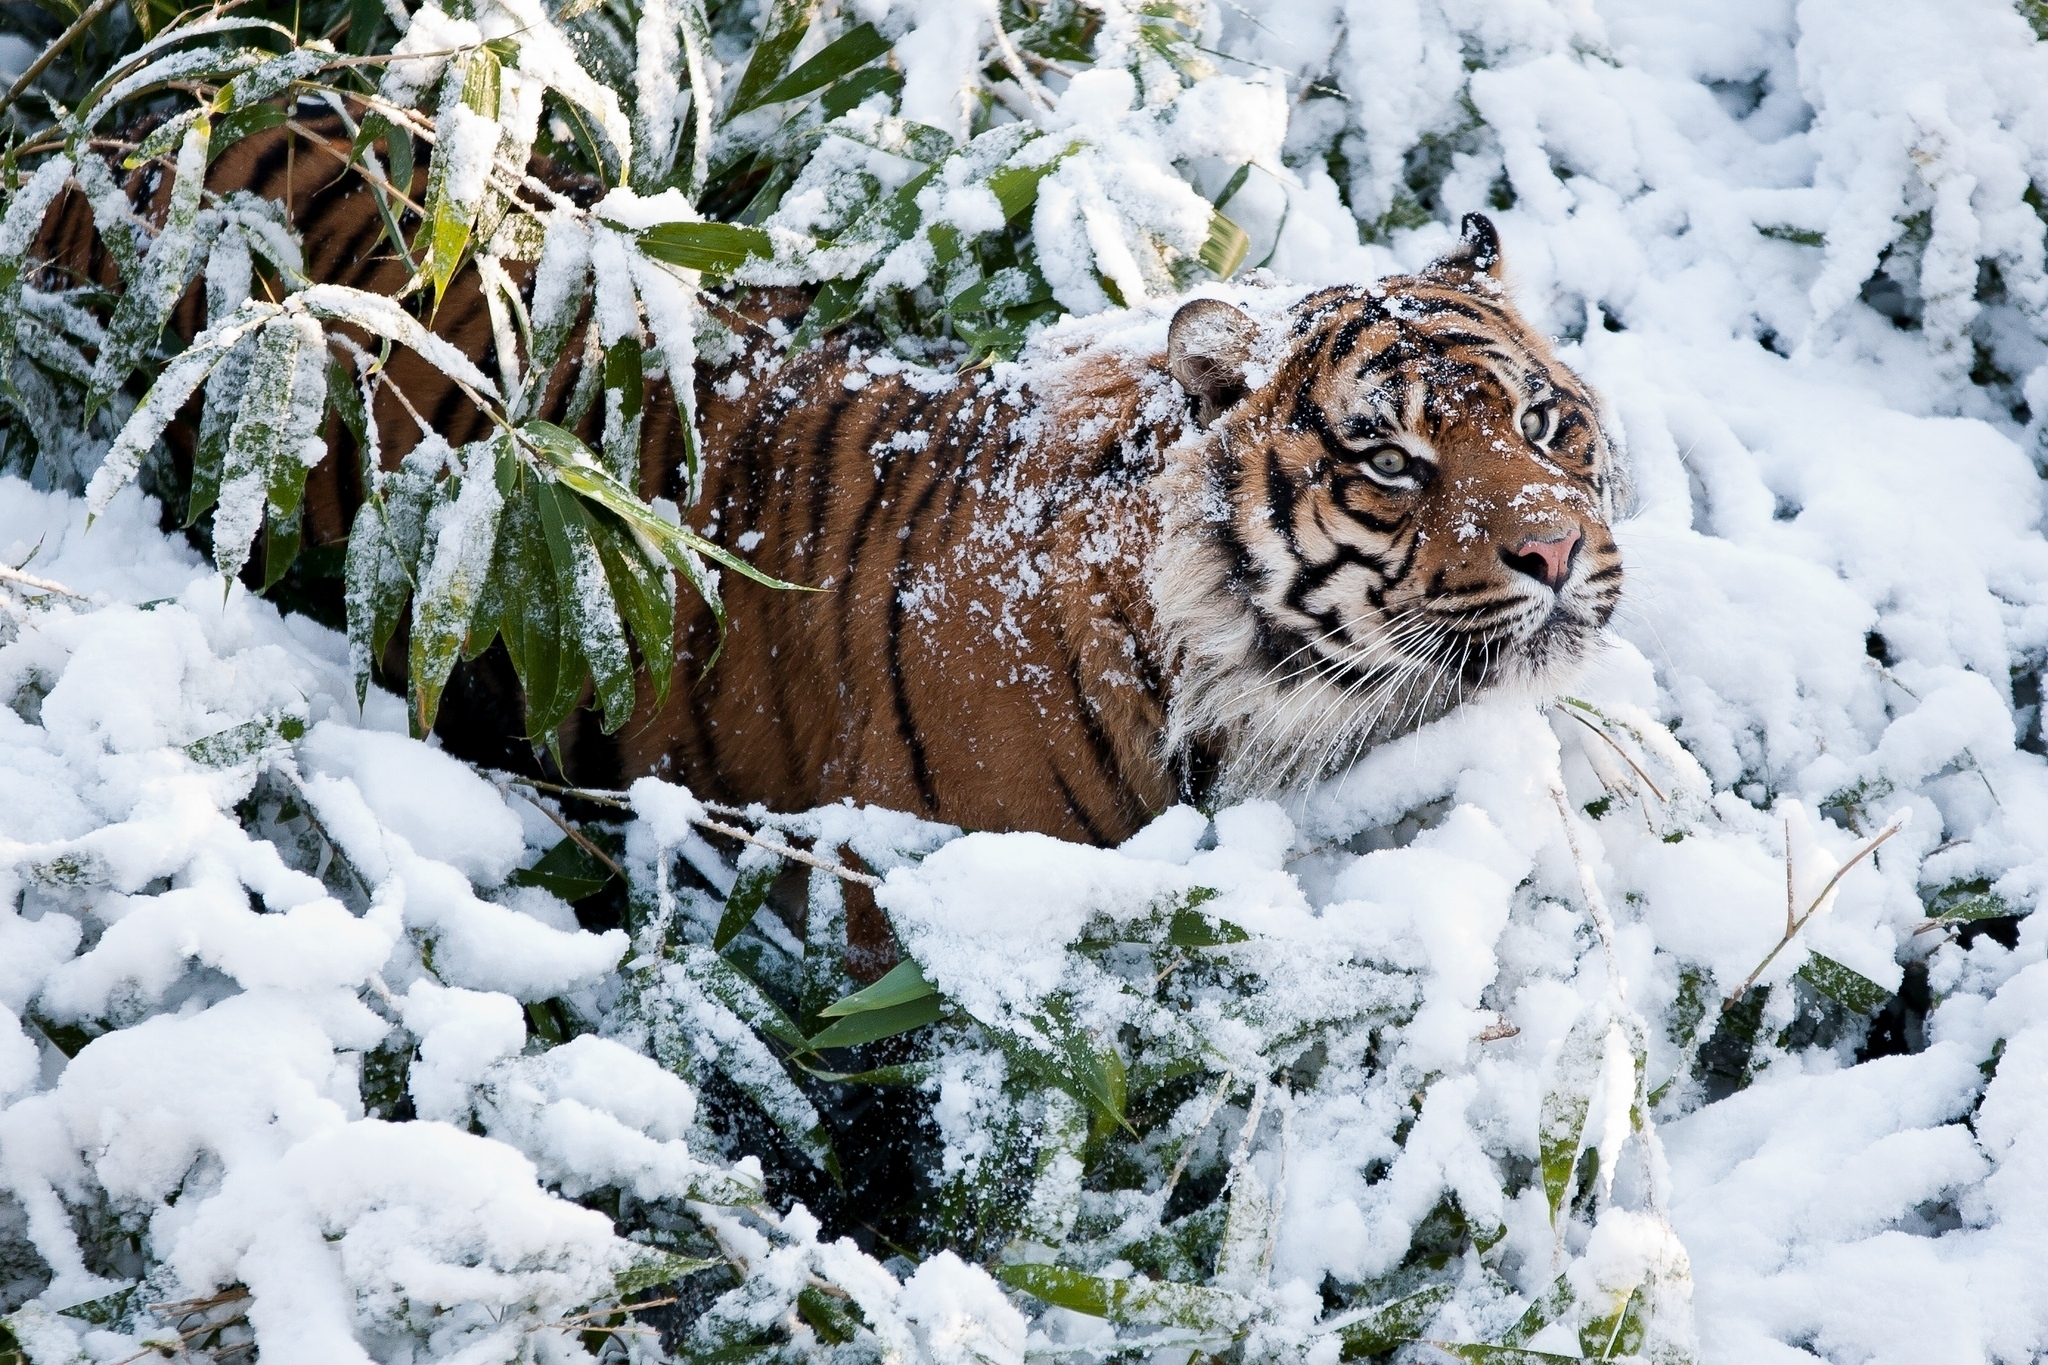 117403 download wallpaper Animals, Tiger, Muzzle, Snow, Climb screensavers and pictures for free